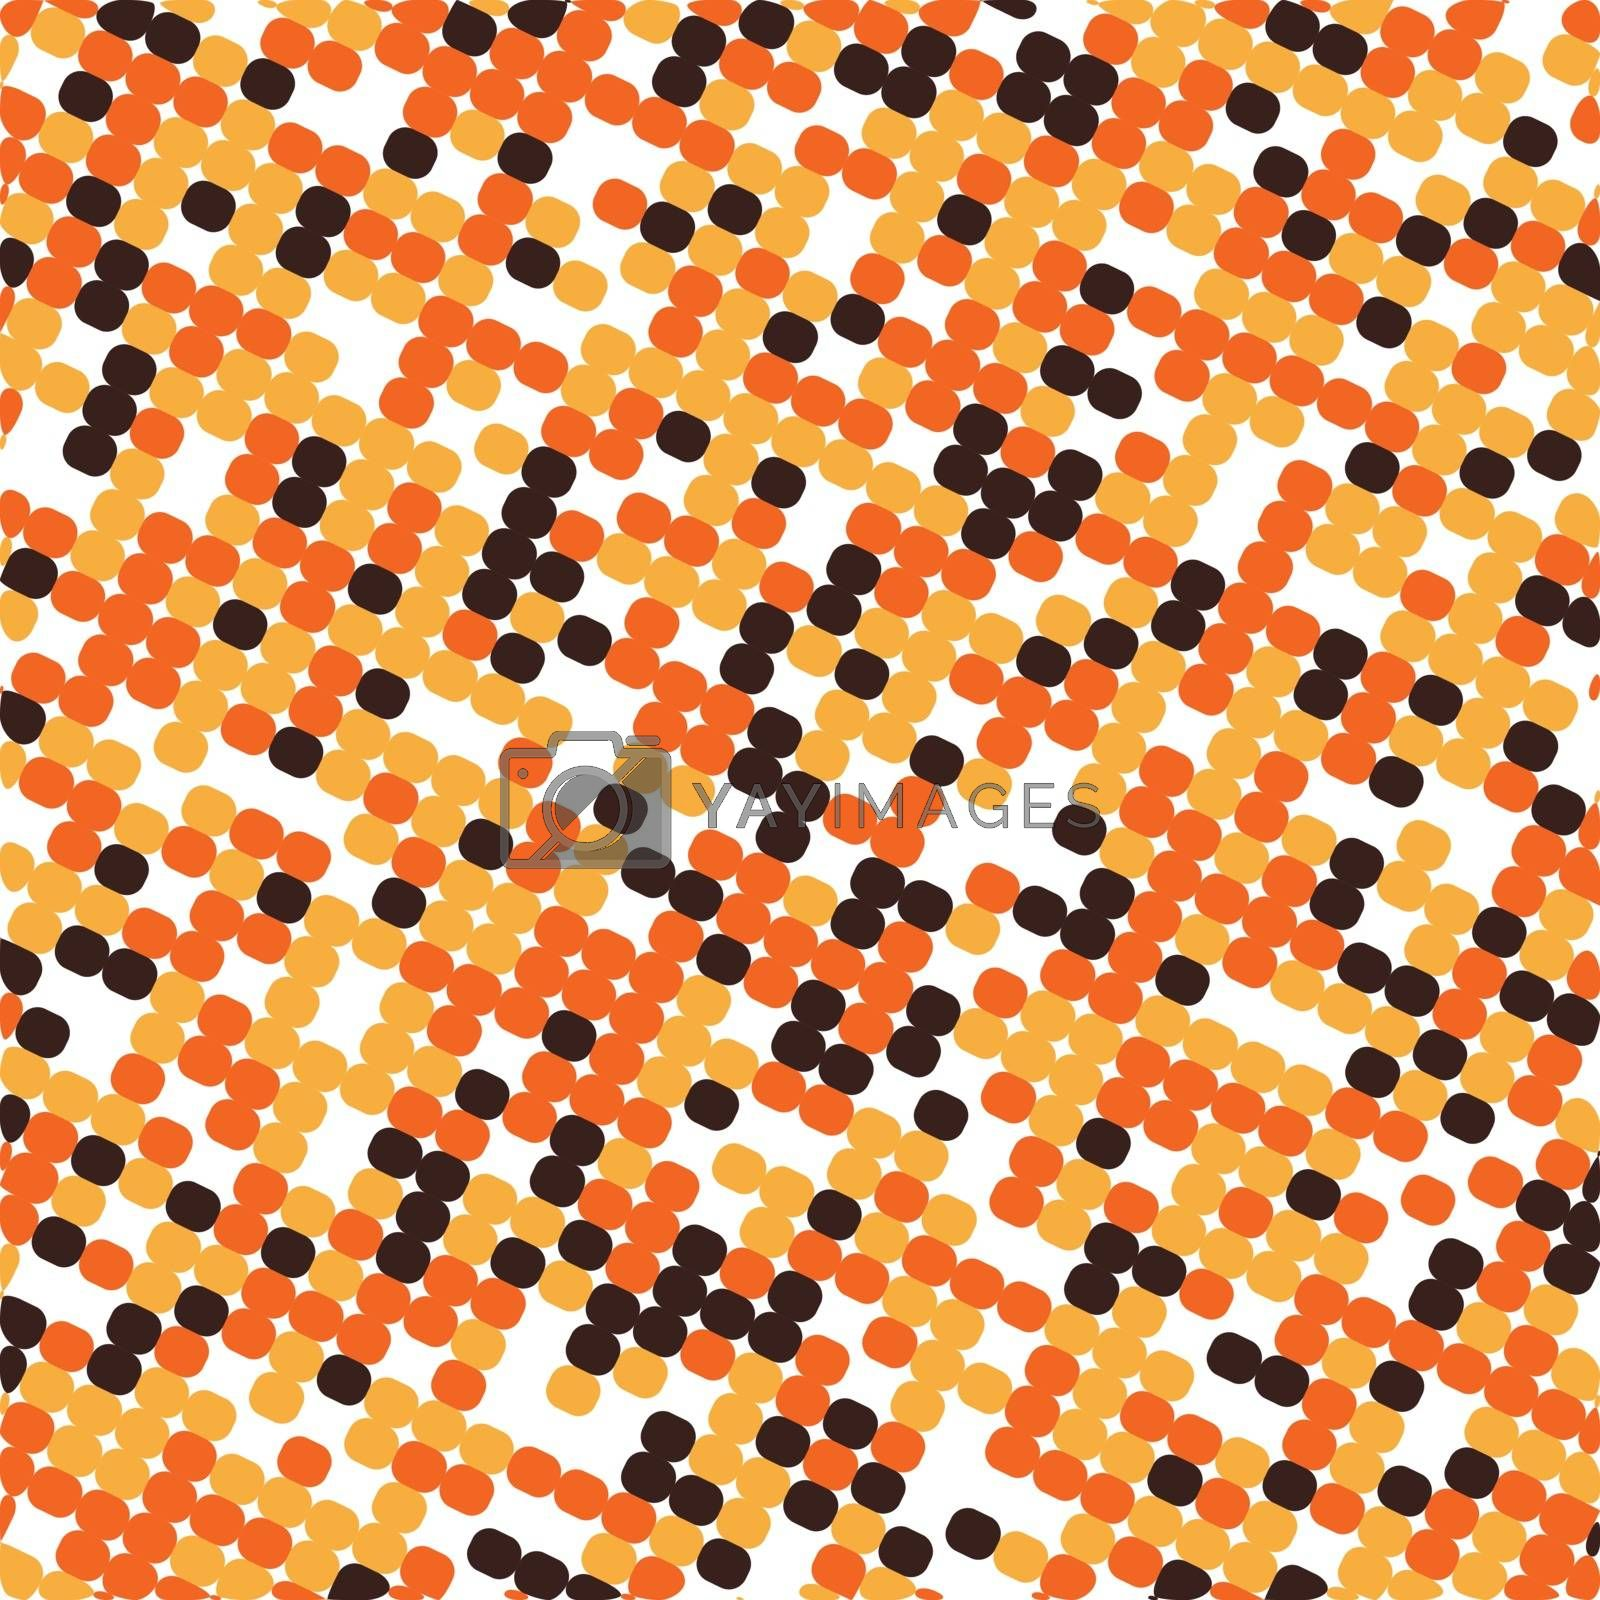 Simple background with colored squares and rhombuses